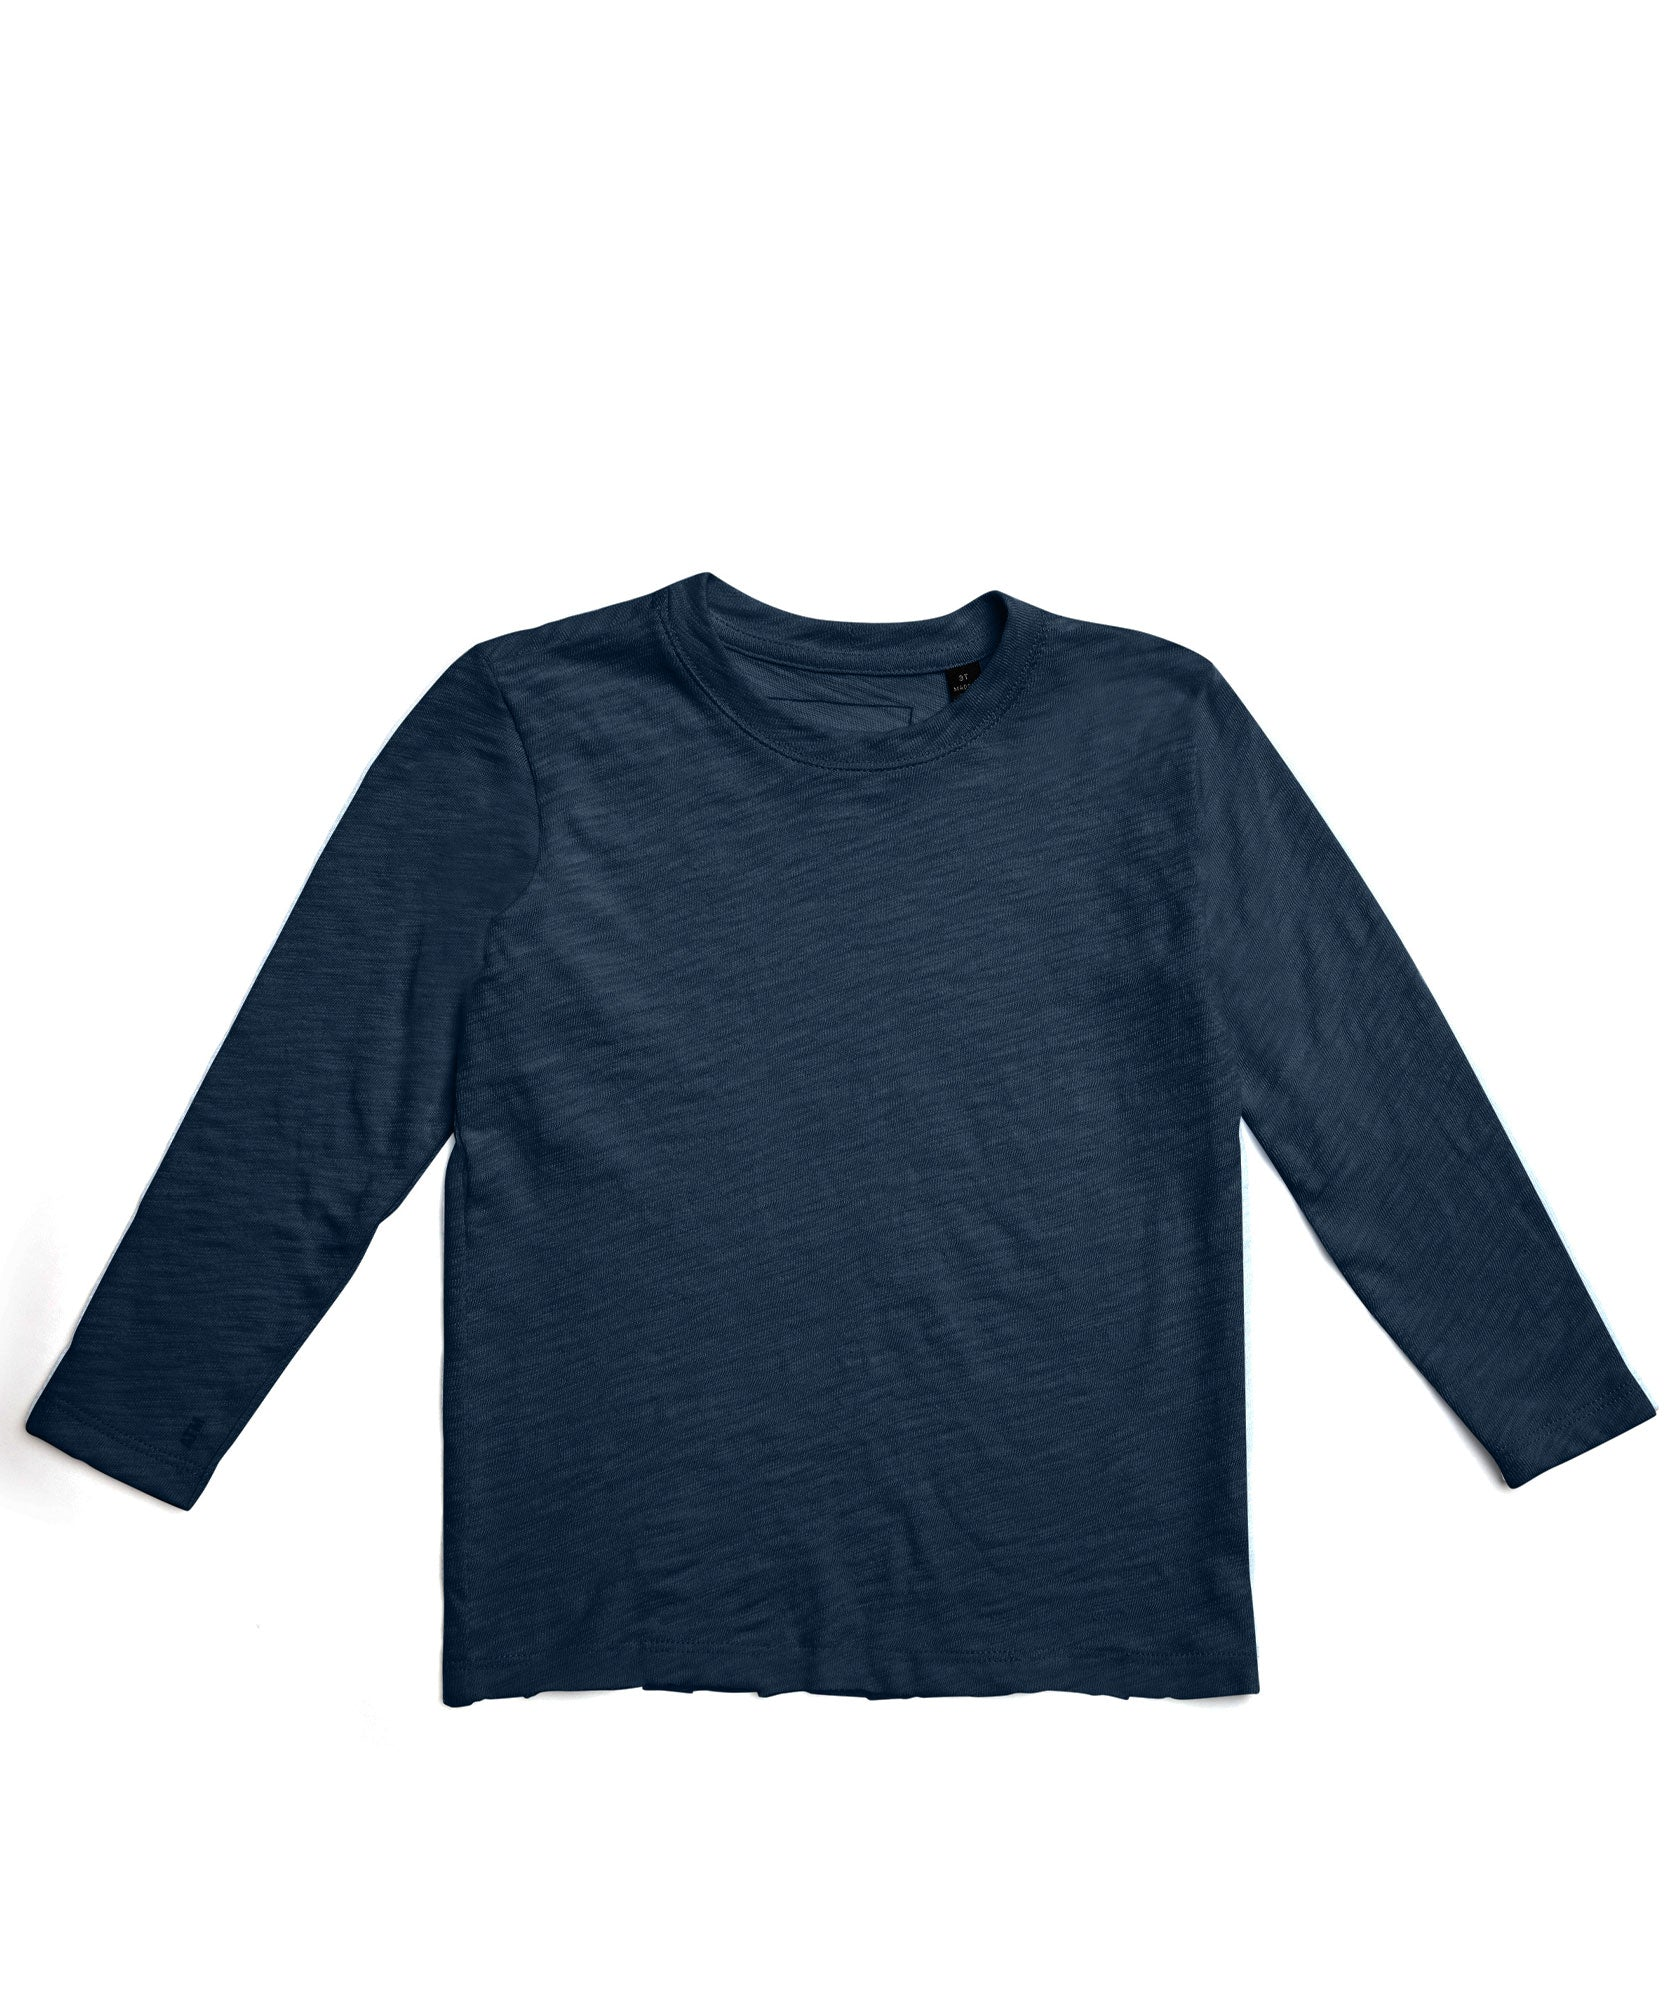 Deep Ocean Kids Slub Jersey Long Sleeve Tee - Kid's Cotton Long Sleeve Tee by ATM Anthony Thomas Melillo